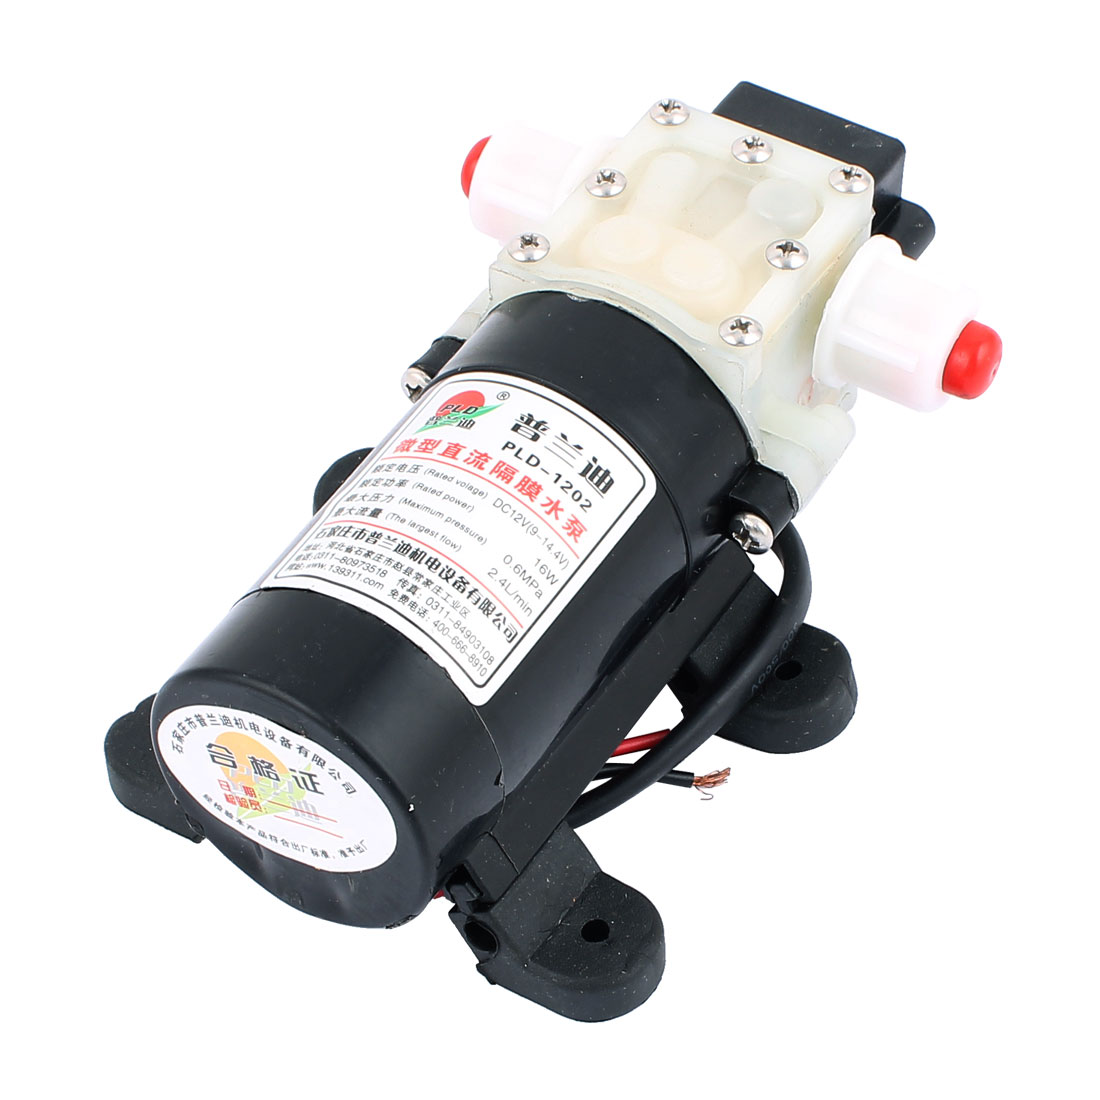 DC 12V 16W Micro Motor Pump 10mm Thread Outlet Inlet Diaphragm Pump